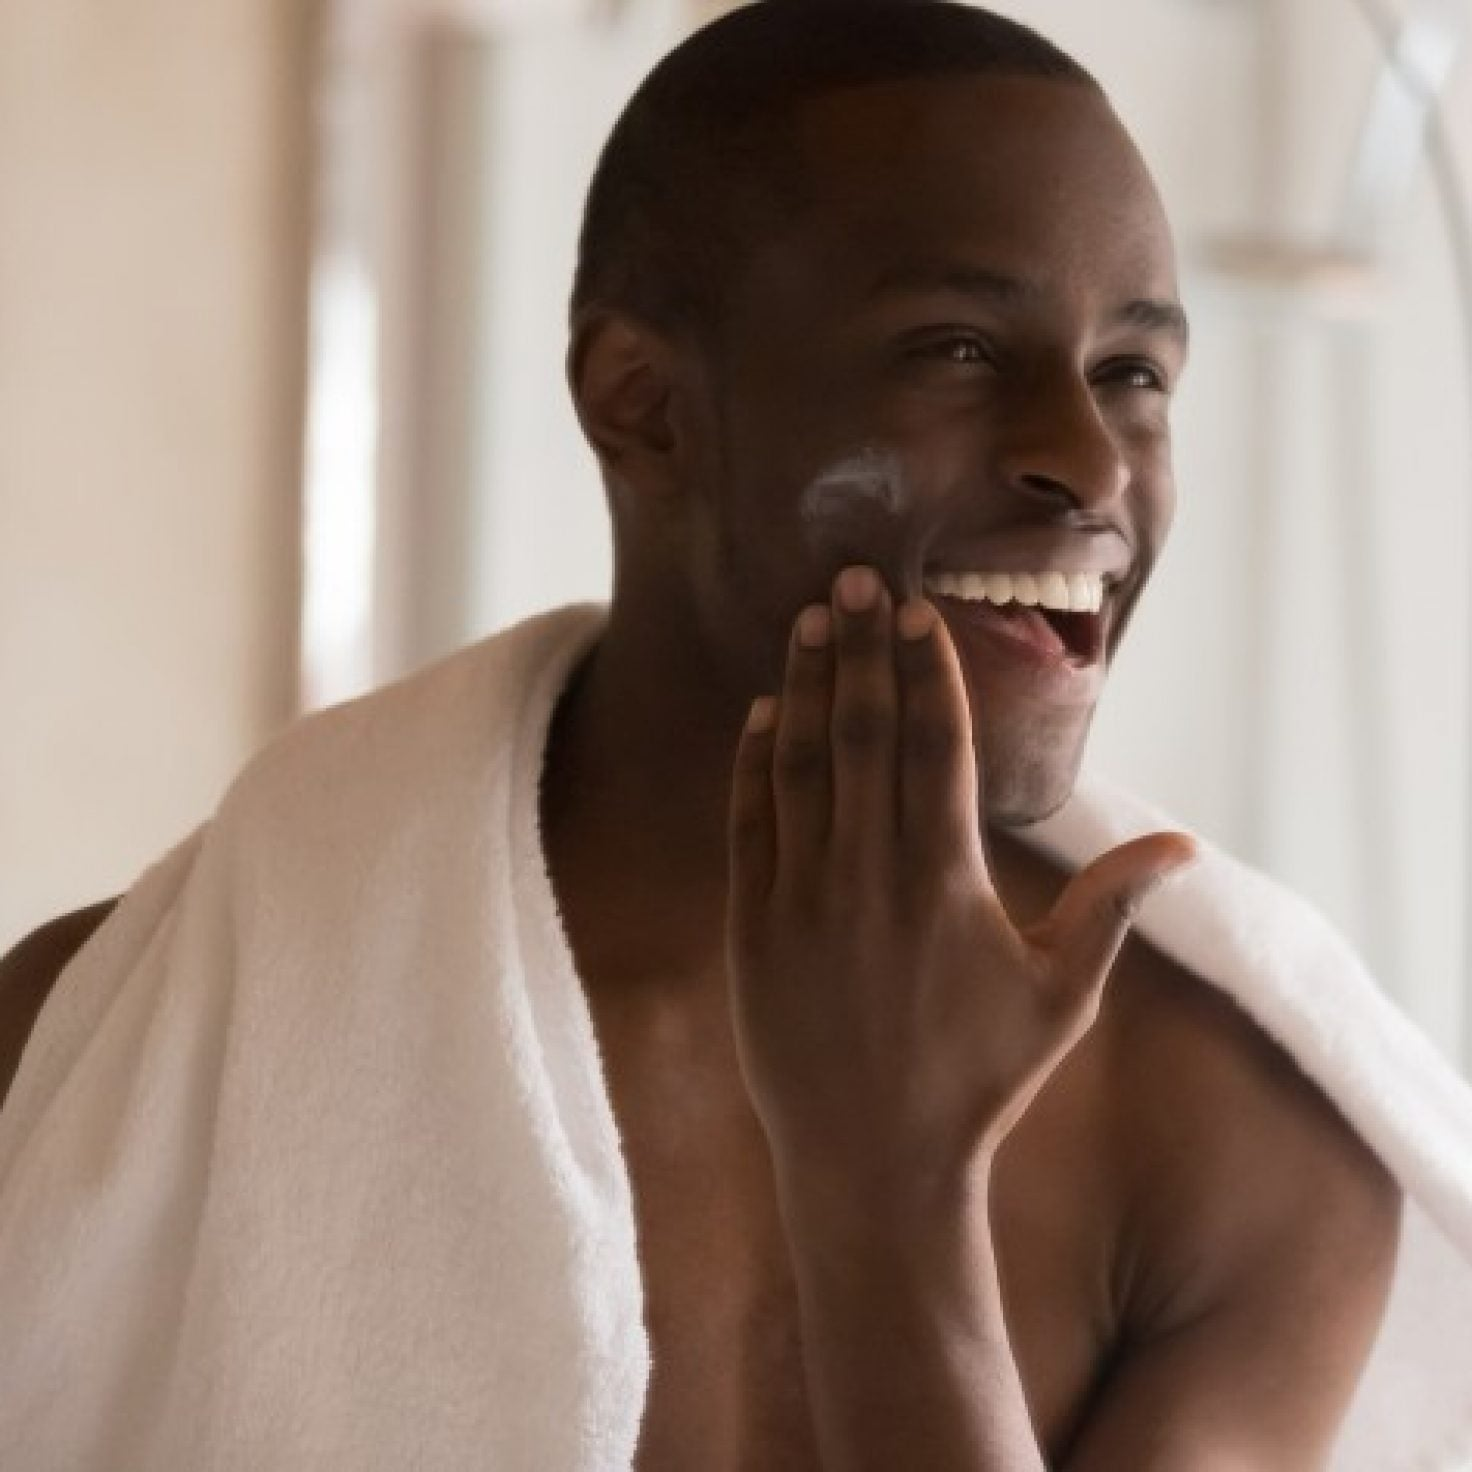 16 Dope Black-Owned Grooming Brands To Level Up His Swag This Father's Day